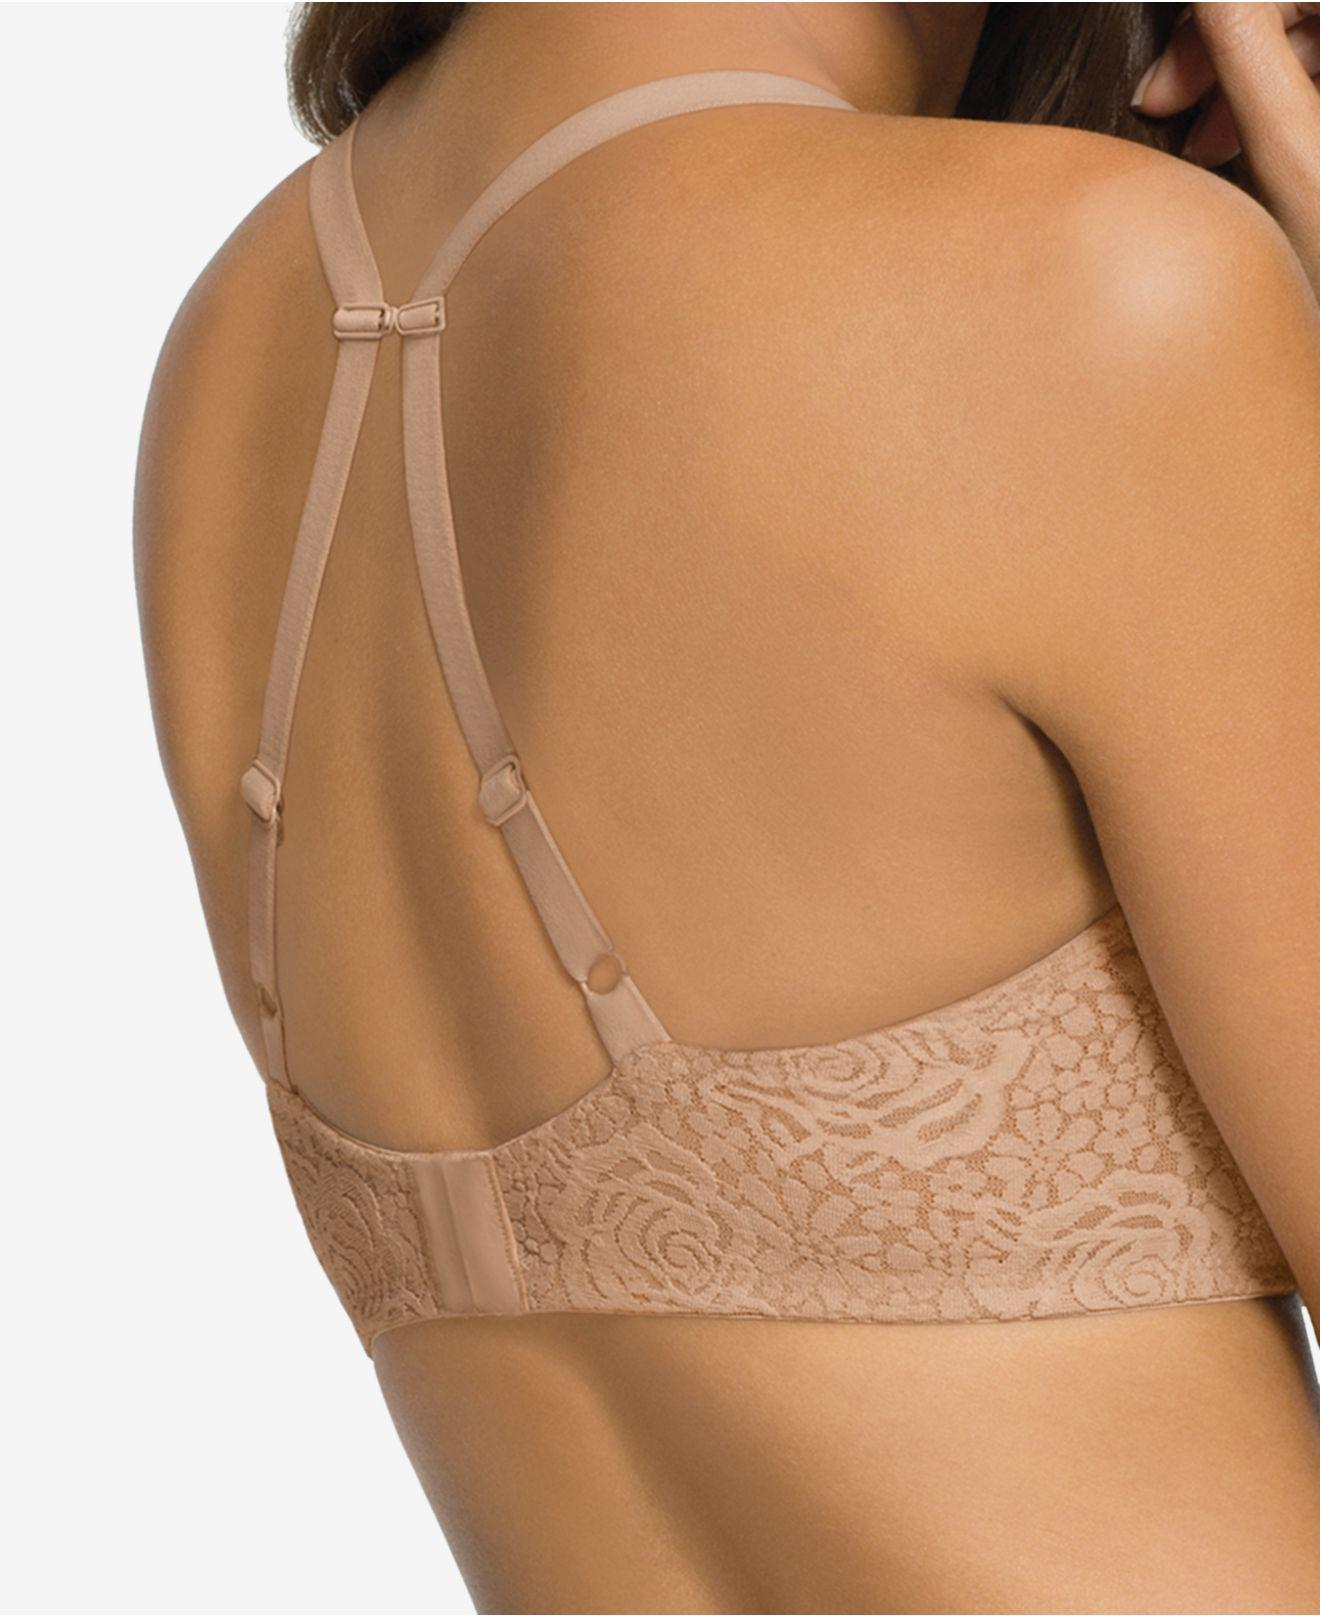 c2ad2fcce3 Lyst - Wacoal Halo Lace Molded Underwire Bra 851205 in Natural